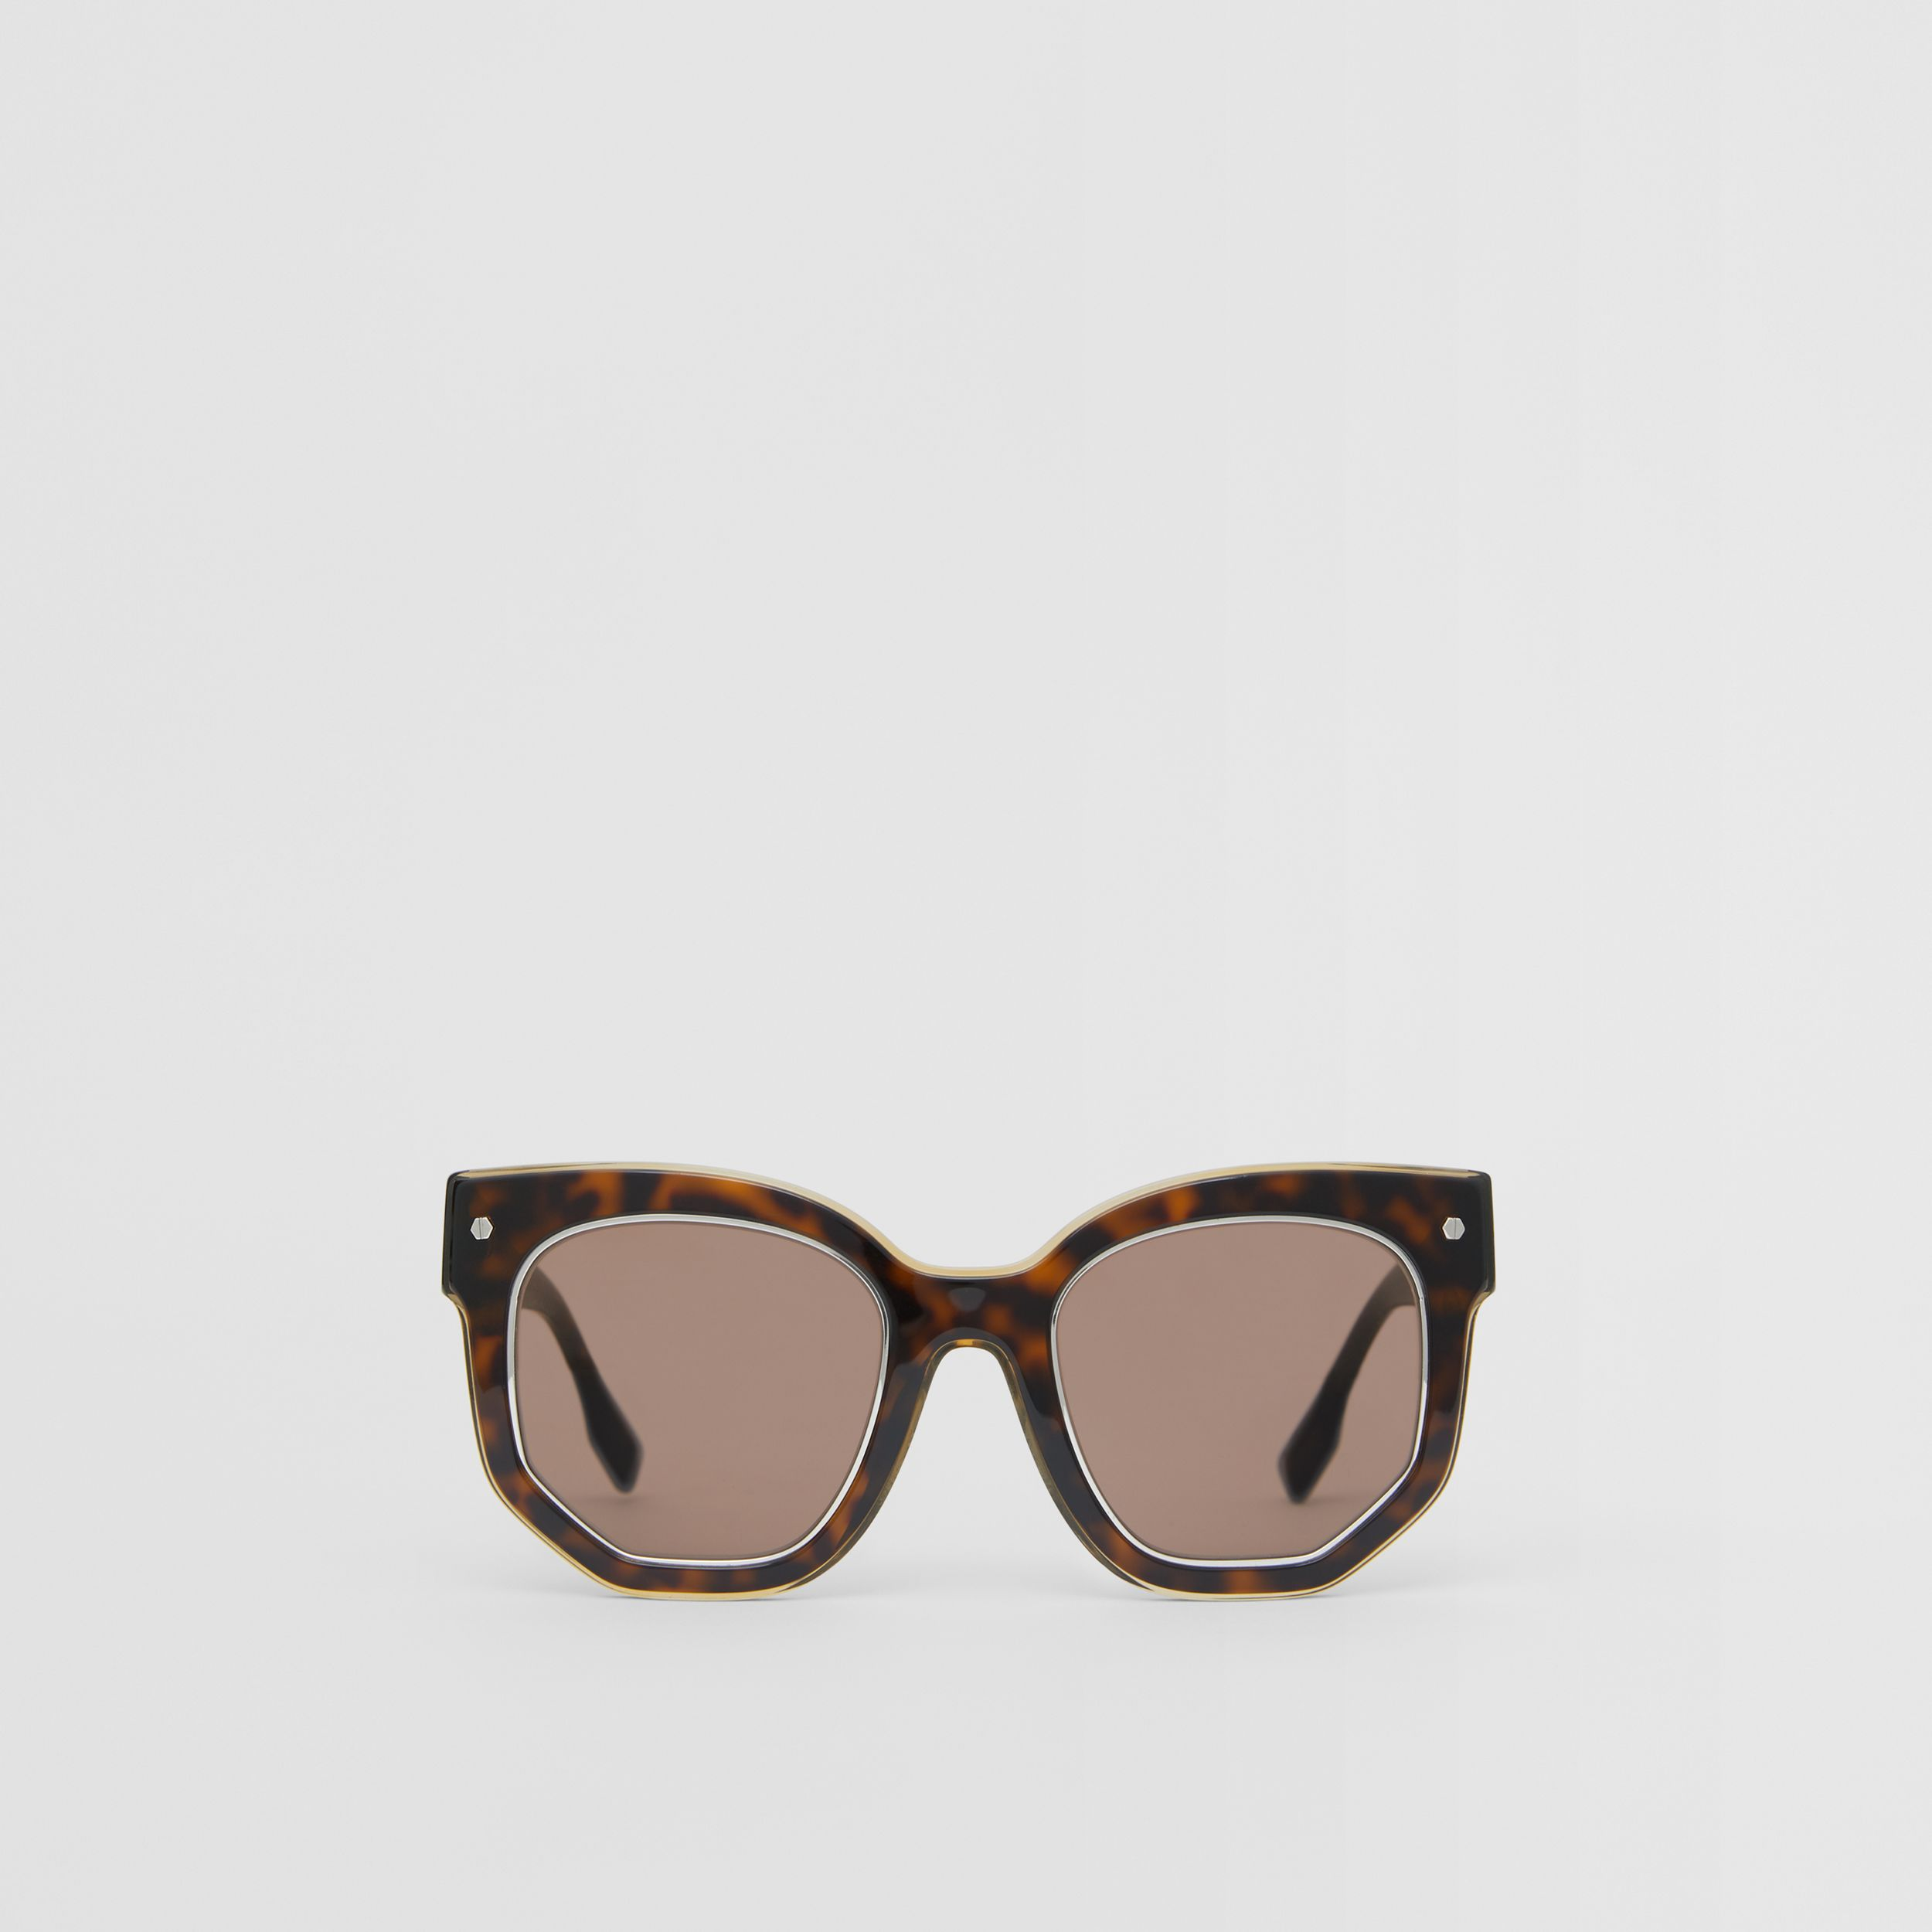 Geometric Frame Sunglasses in Tortoiseshell - Women | Burberry - 1